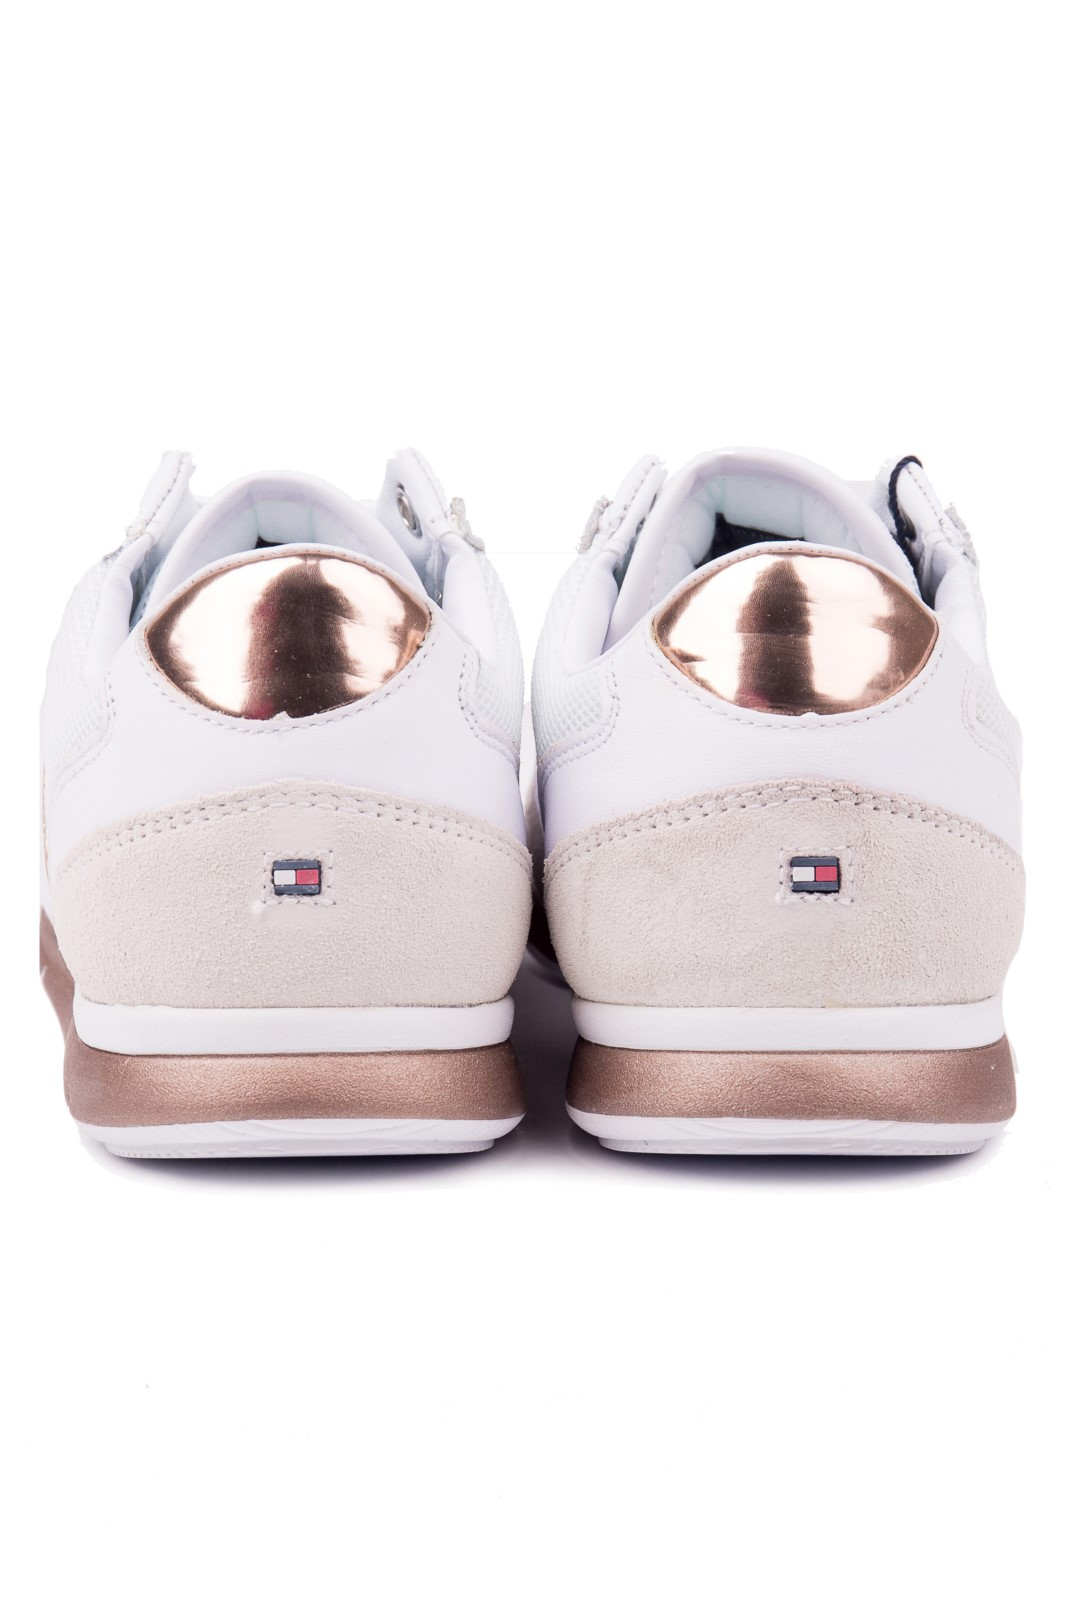 Tommy Hilfiger white leather sneakers